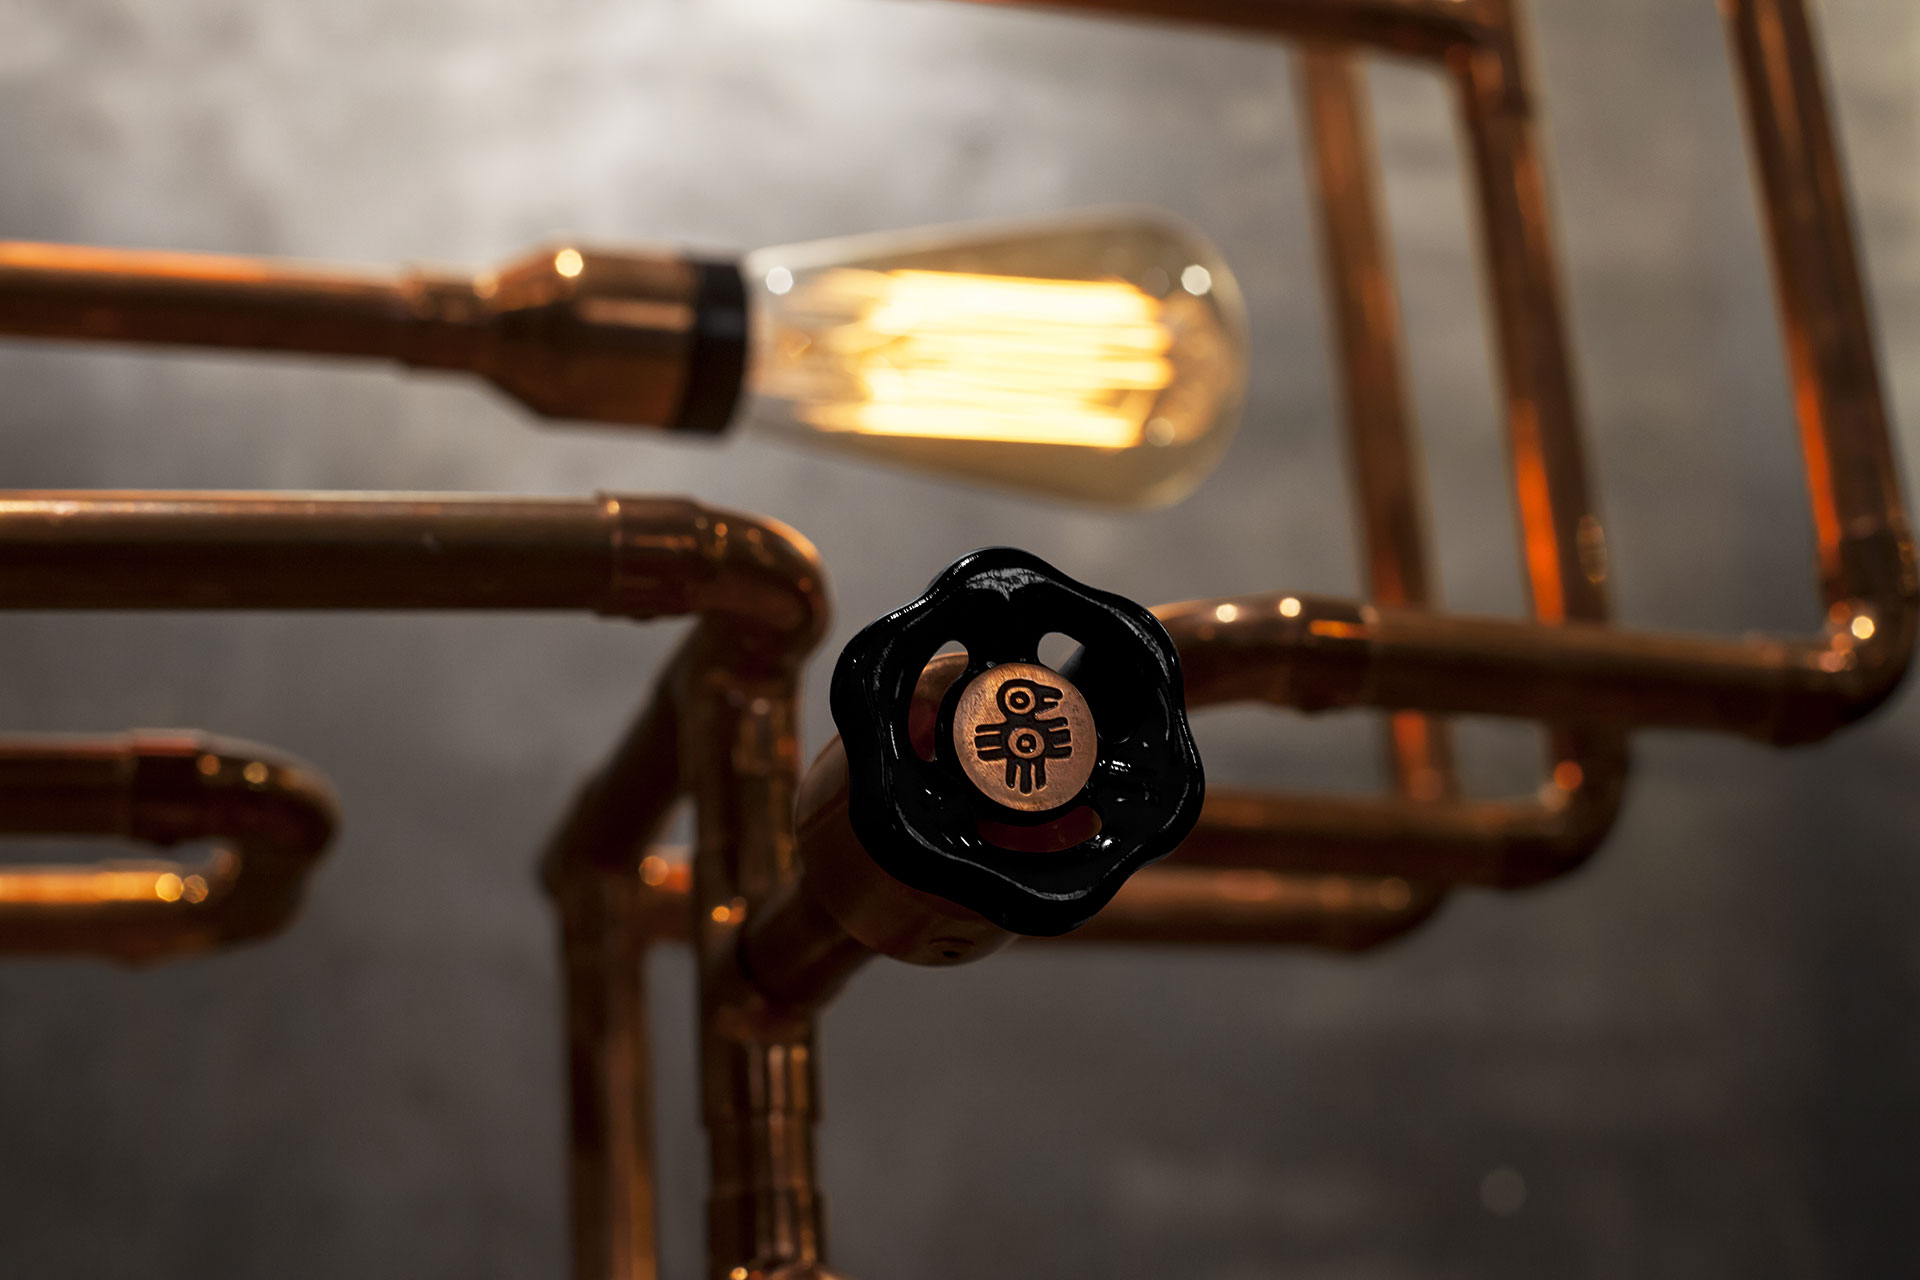 Cool knob dimmer in copper pipe table lamp inspired by industrial design